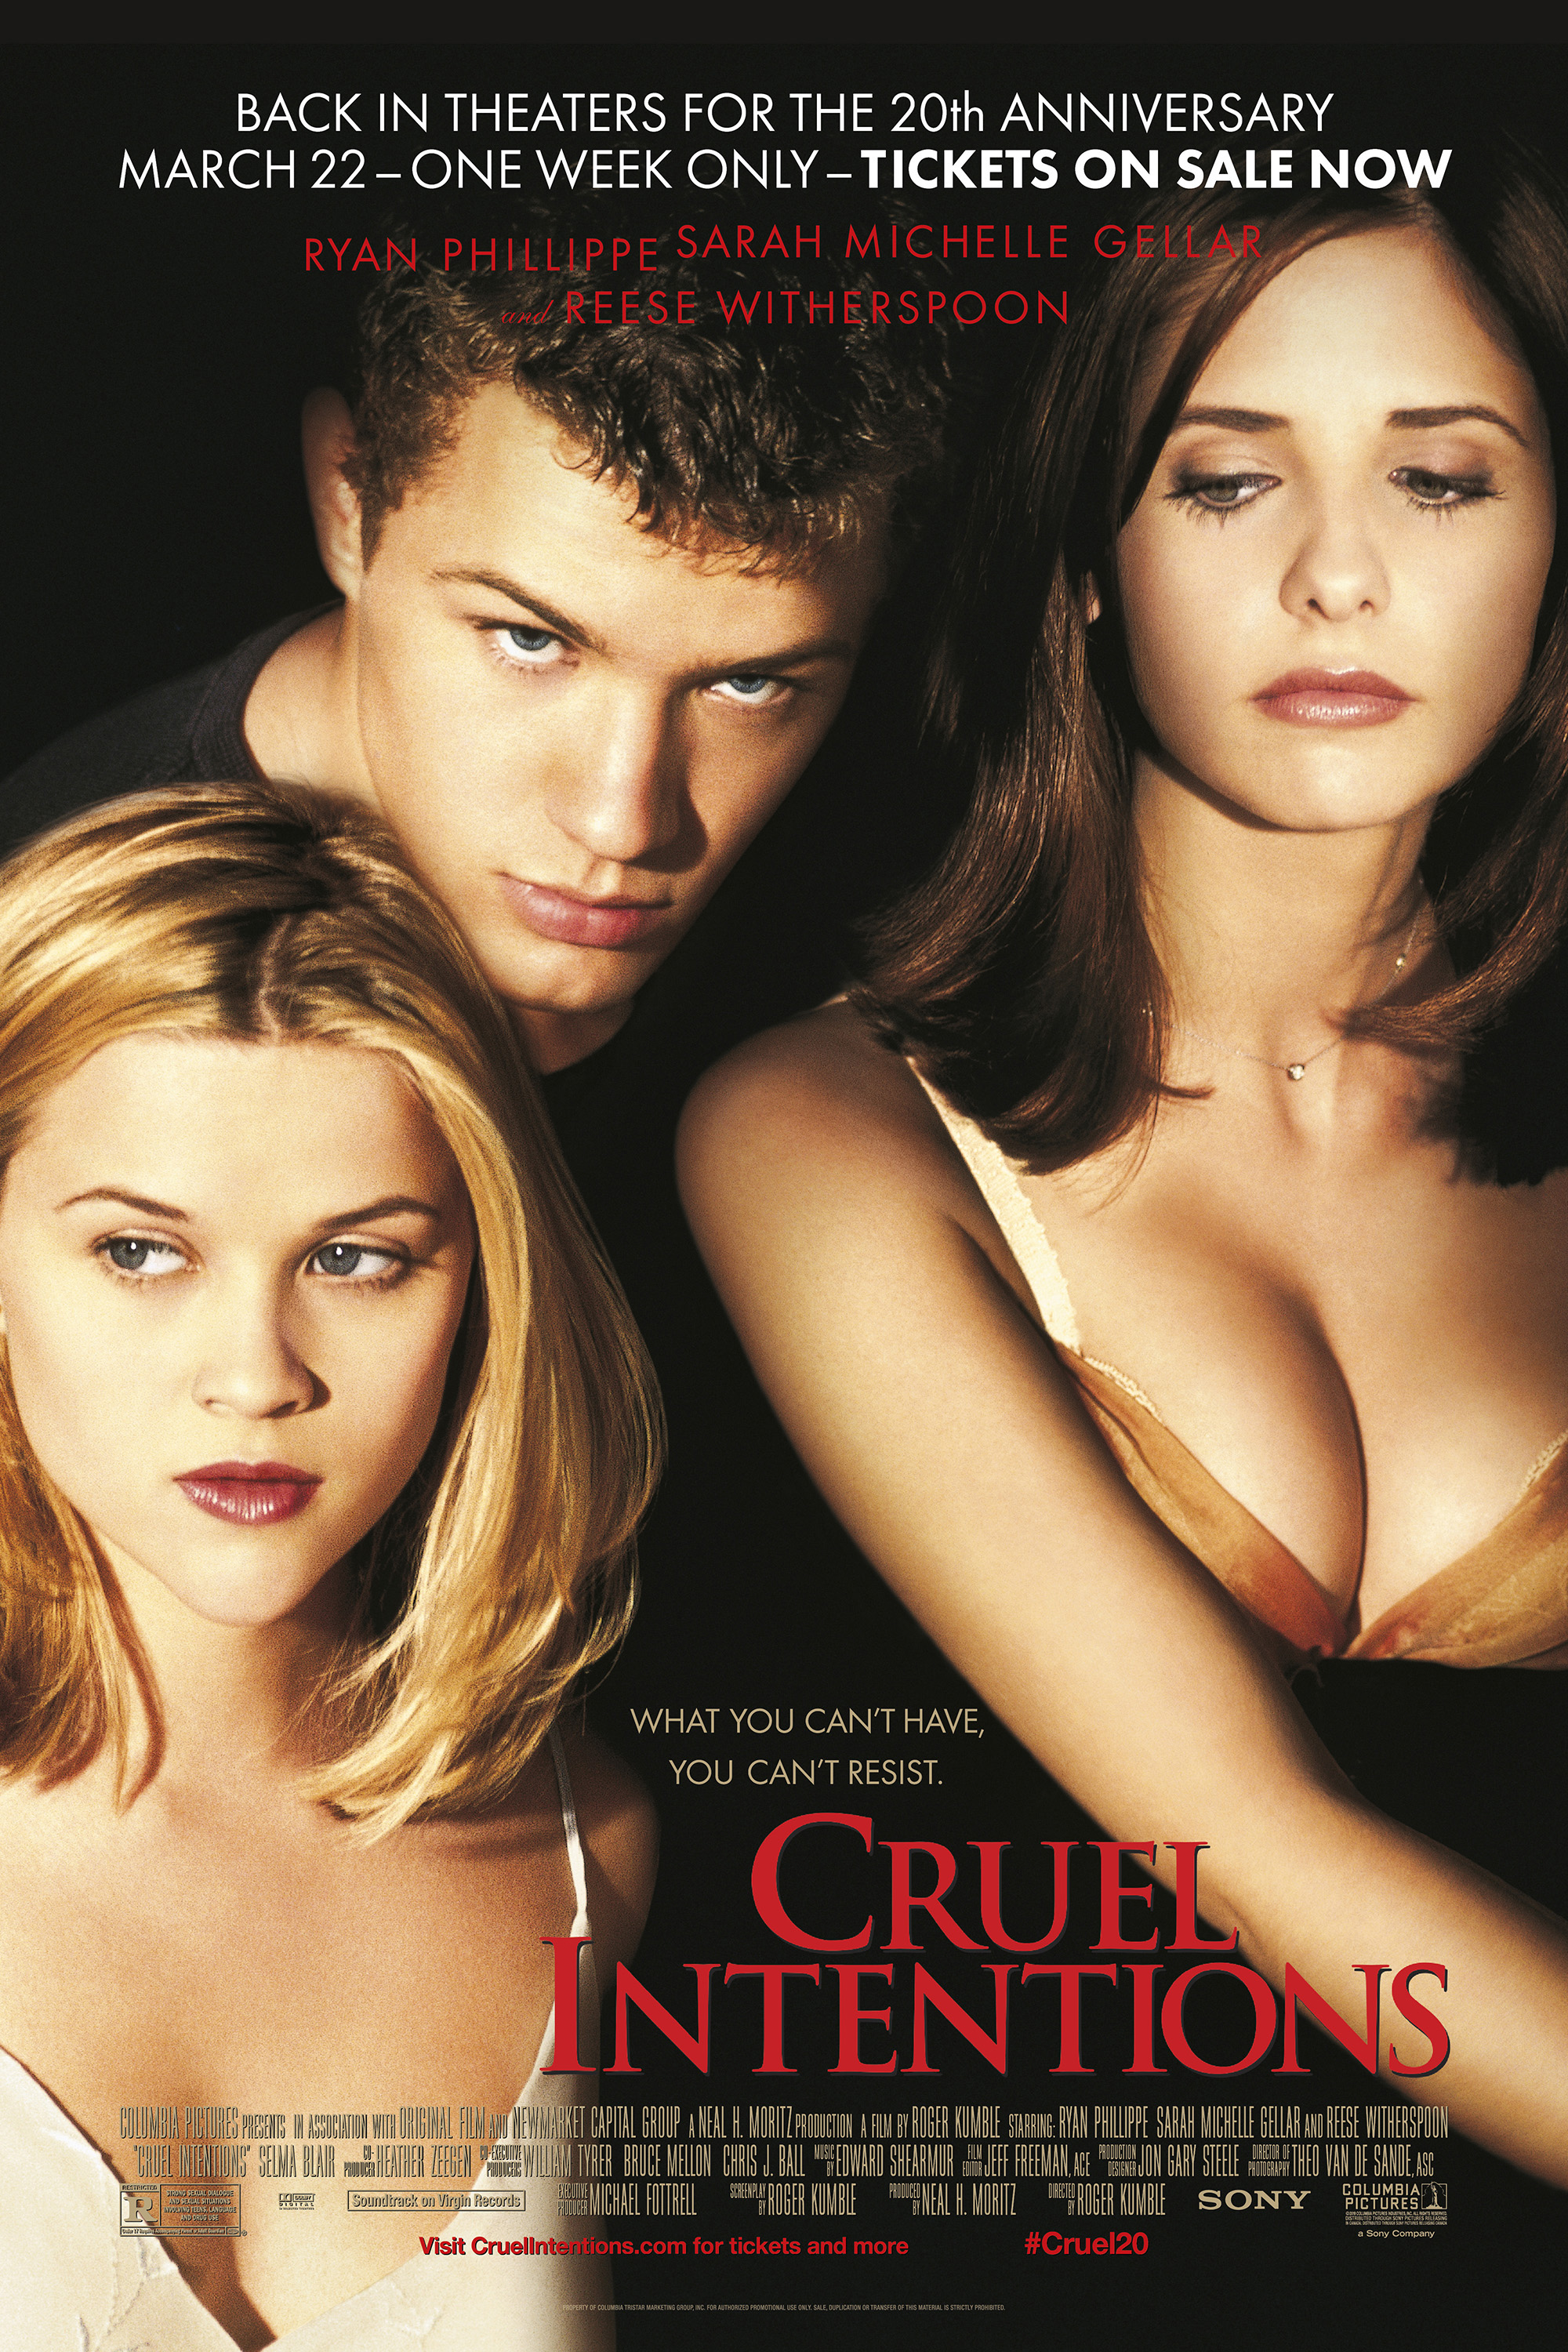 Poster of Cruel Intentions 20th Anniversary